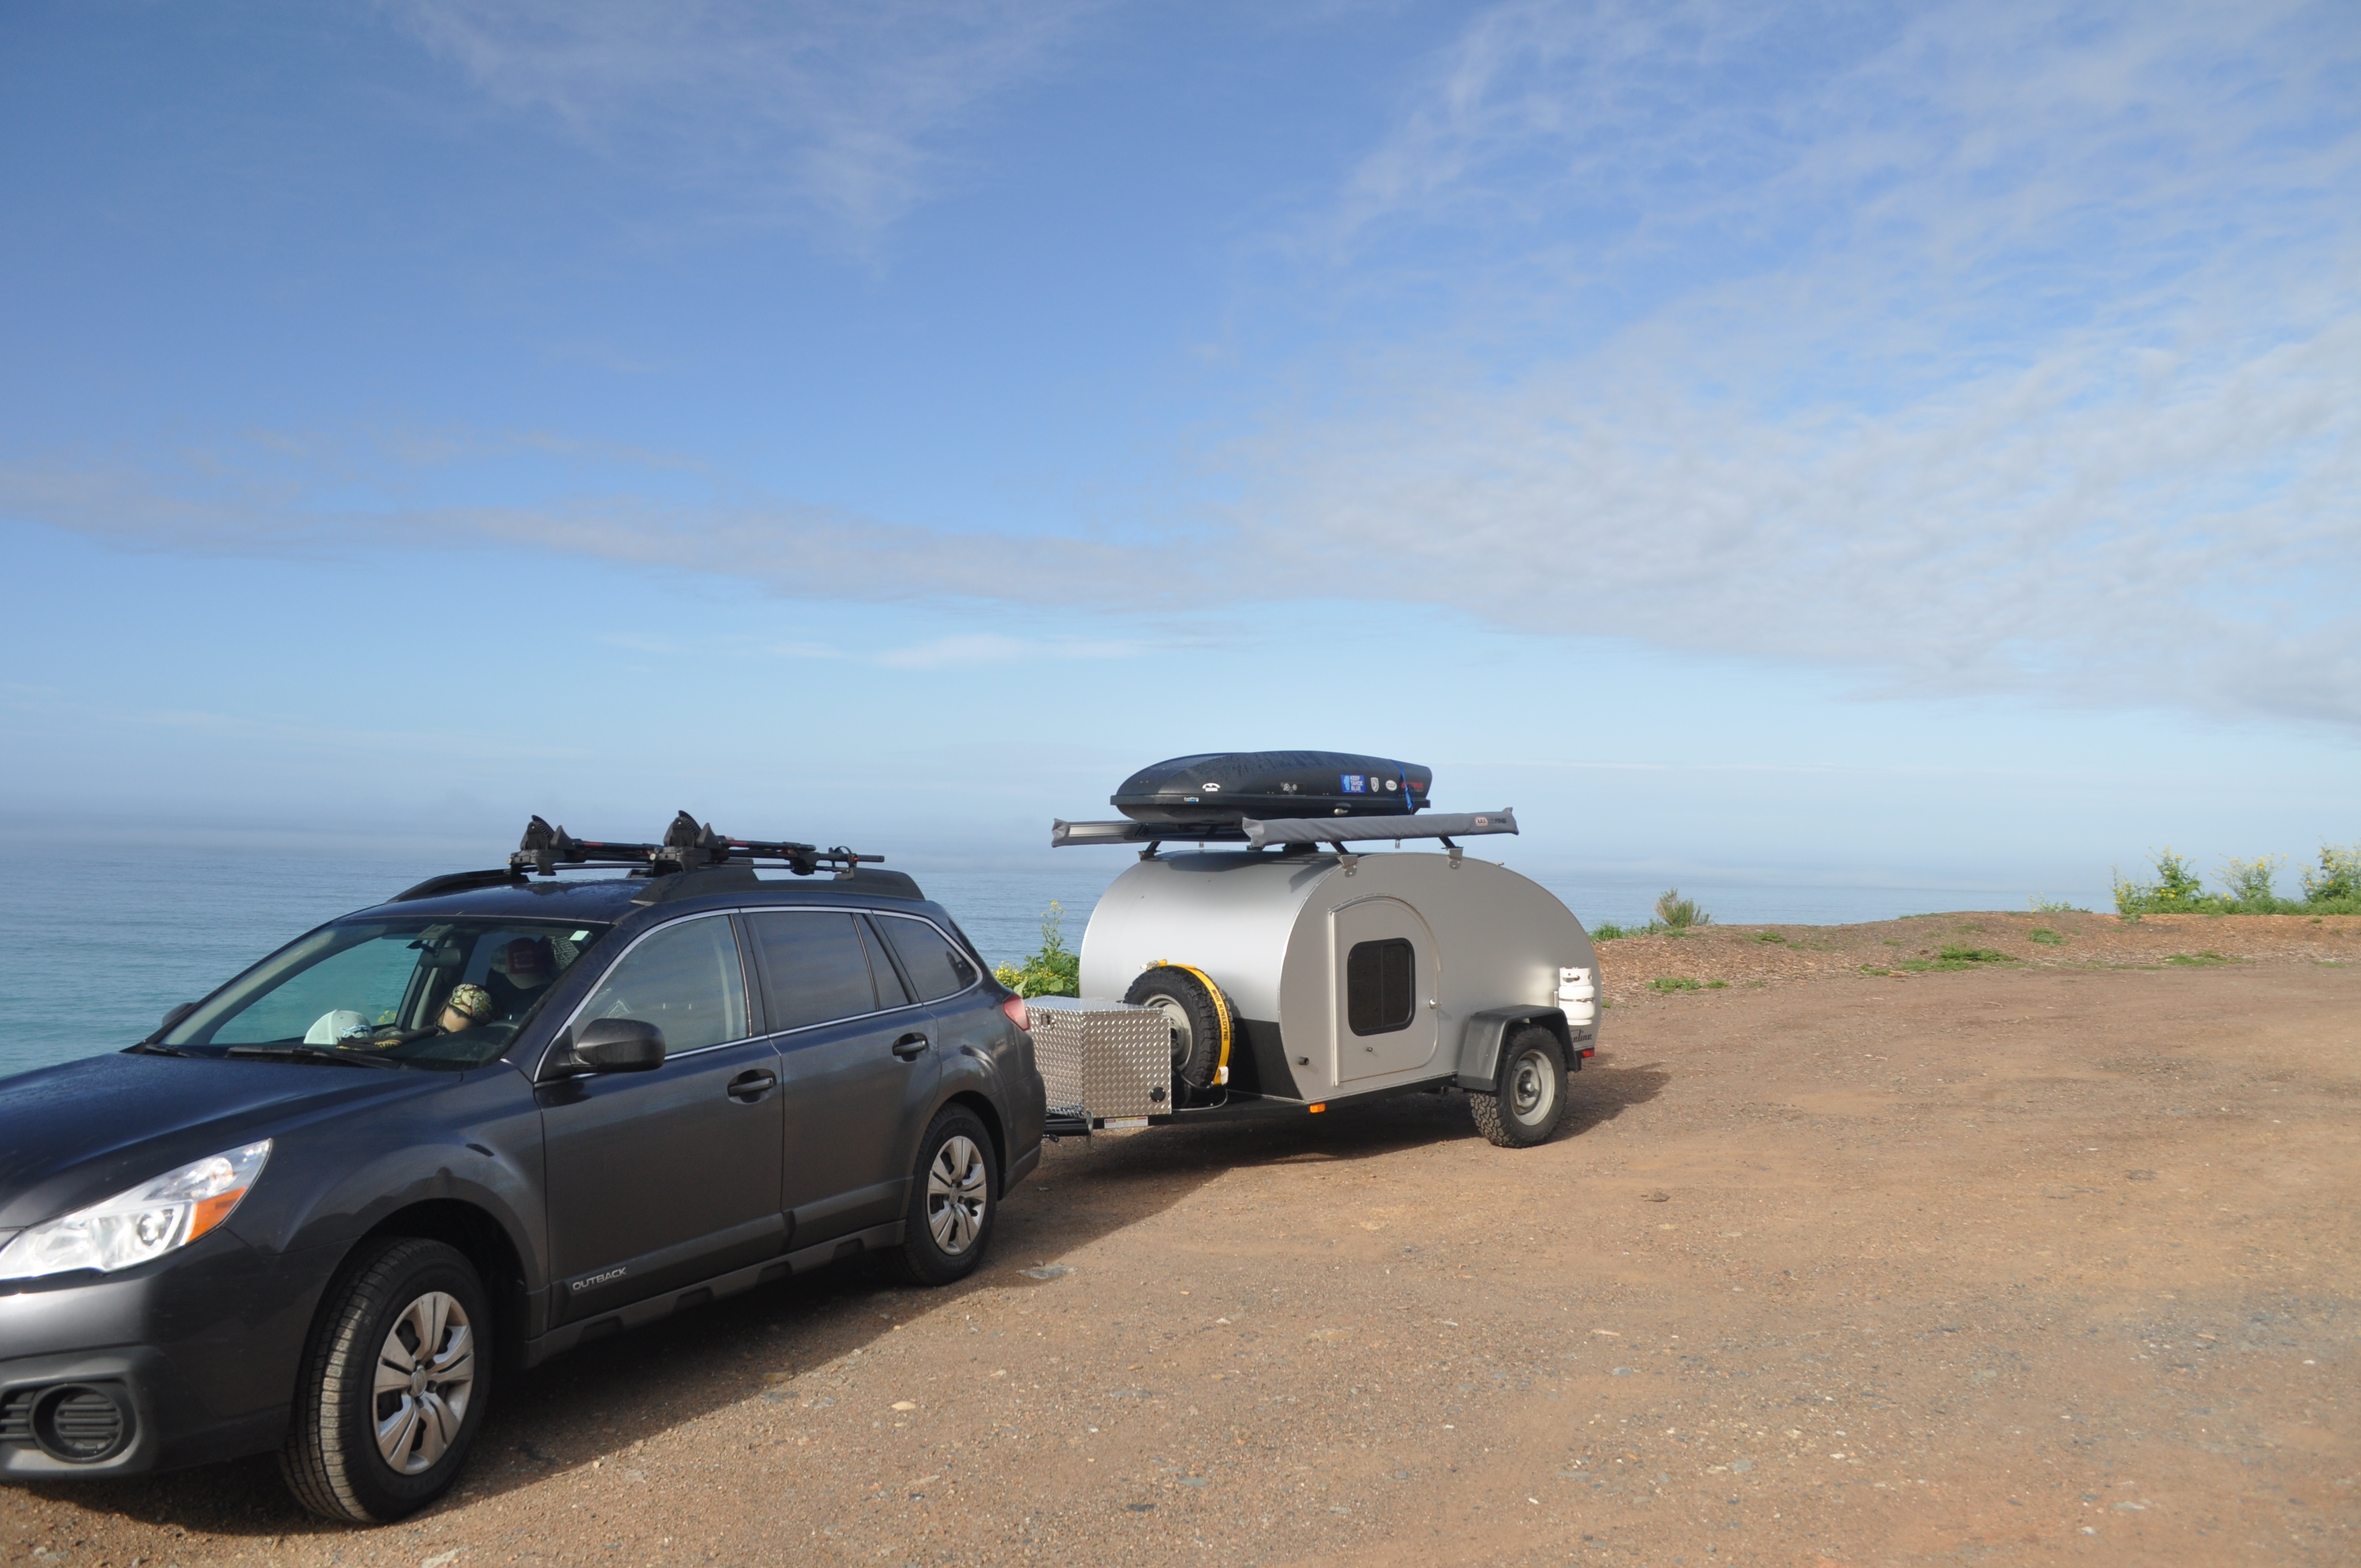 subaru outback pop up camper autos post. Black Bedroom Furniture Sets. Home Design Ideas